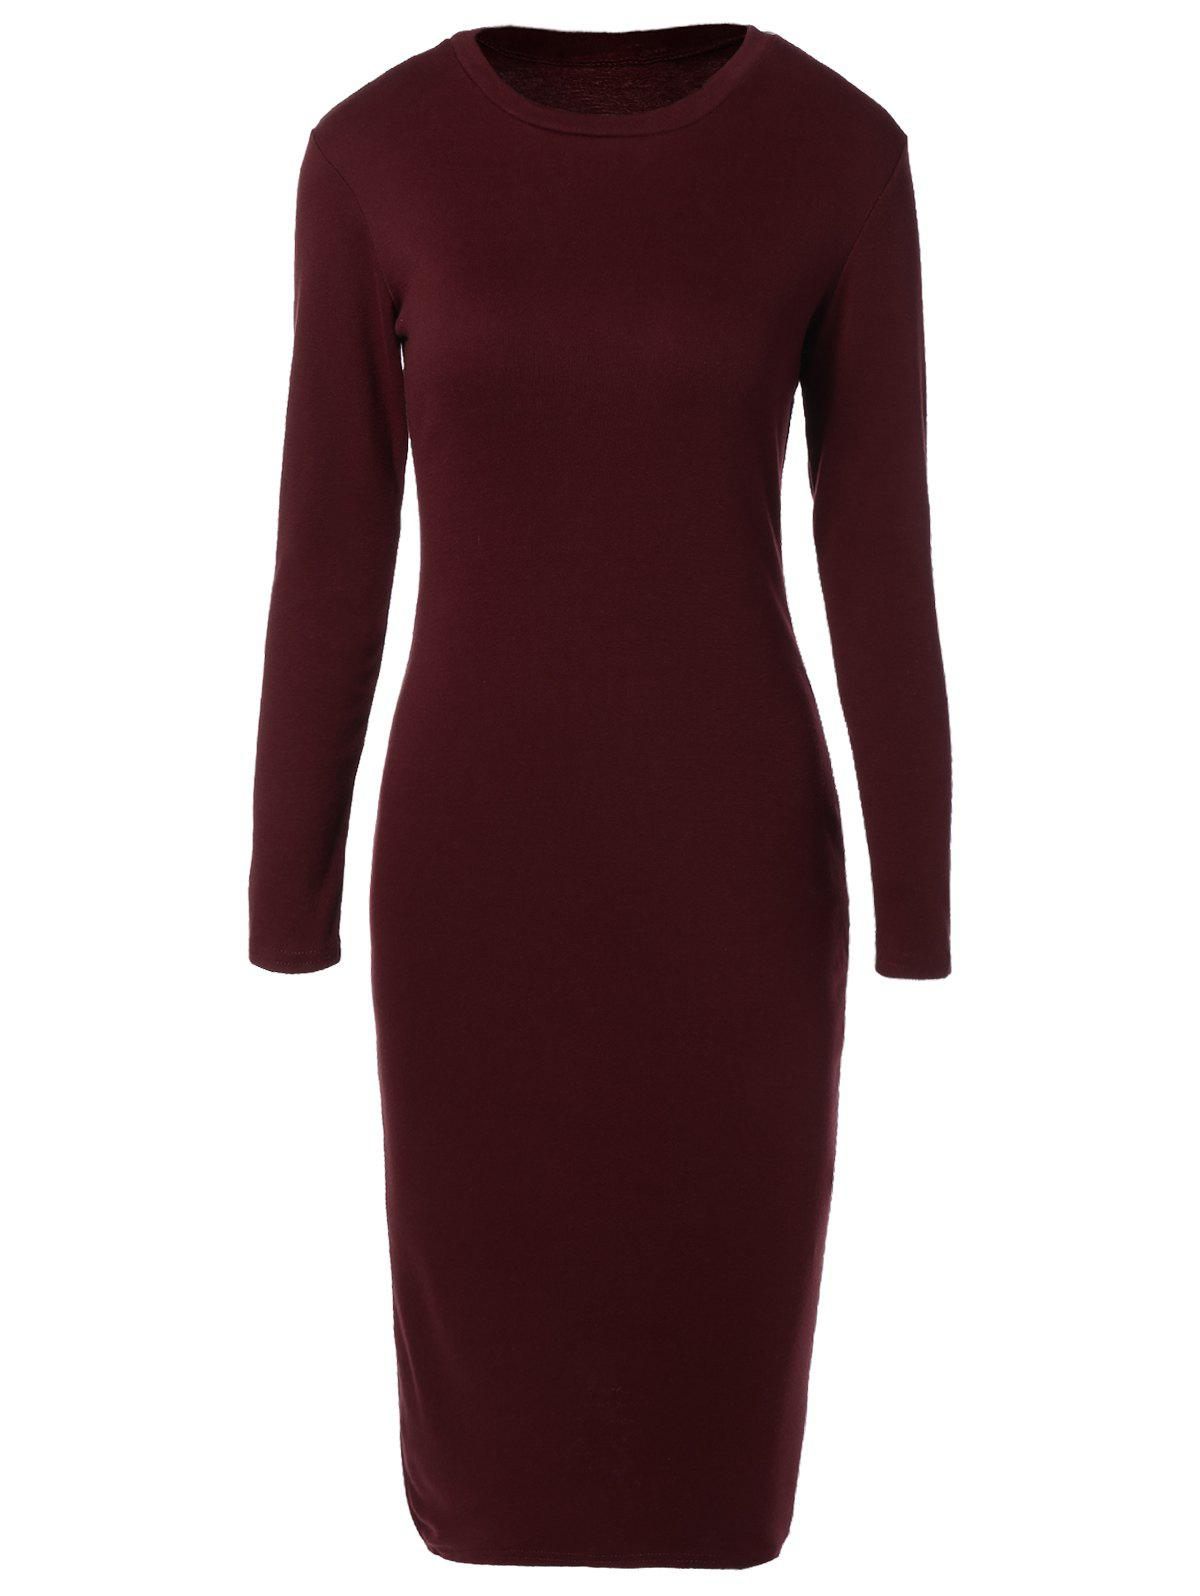 Long Sleeve Back Slit Pencil Dress long sleeve back slit pencil dress